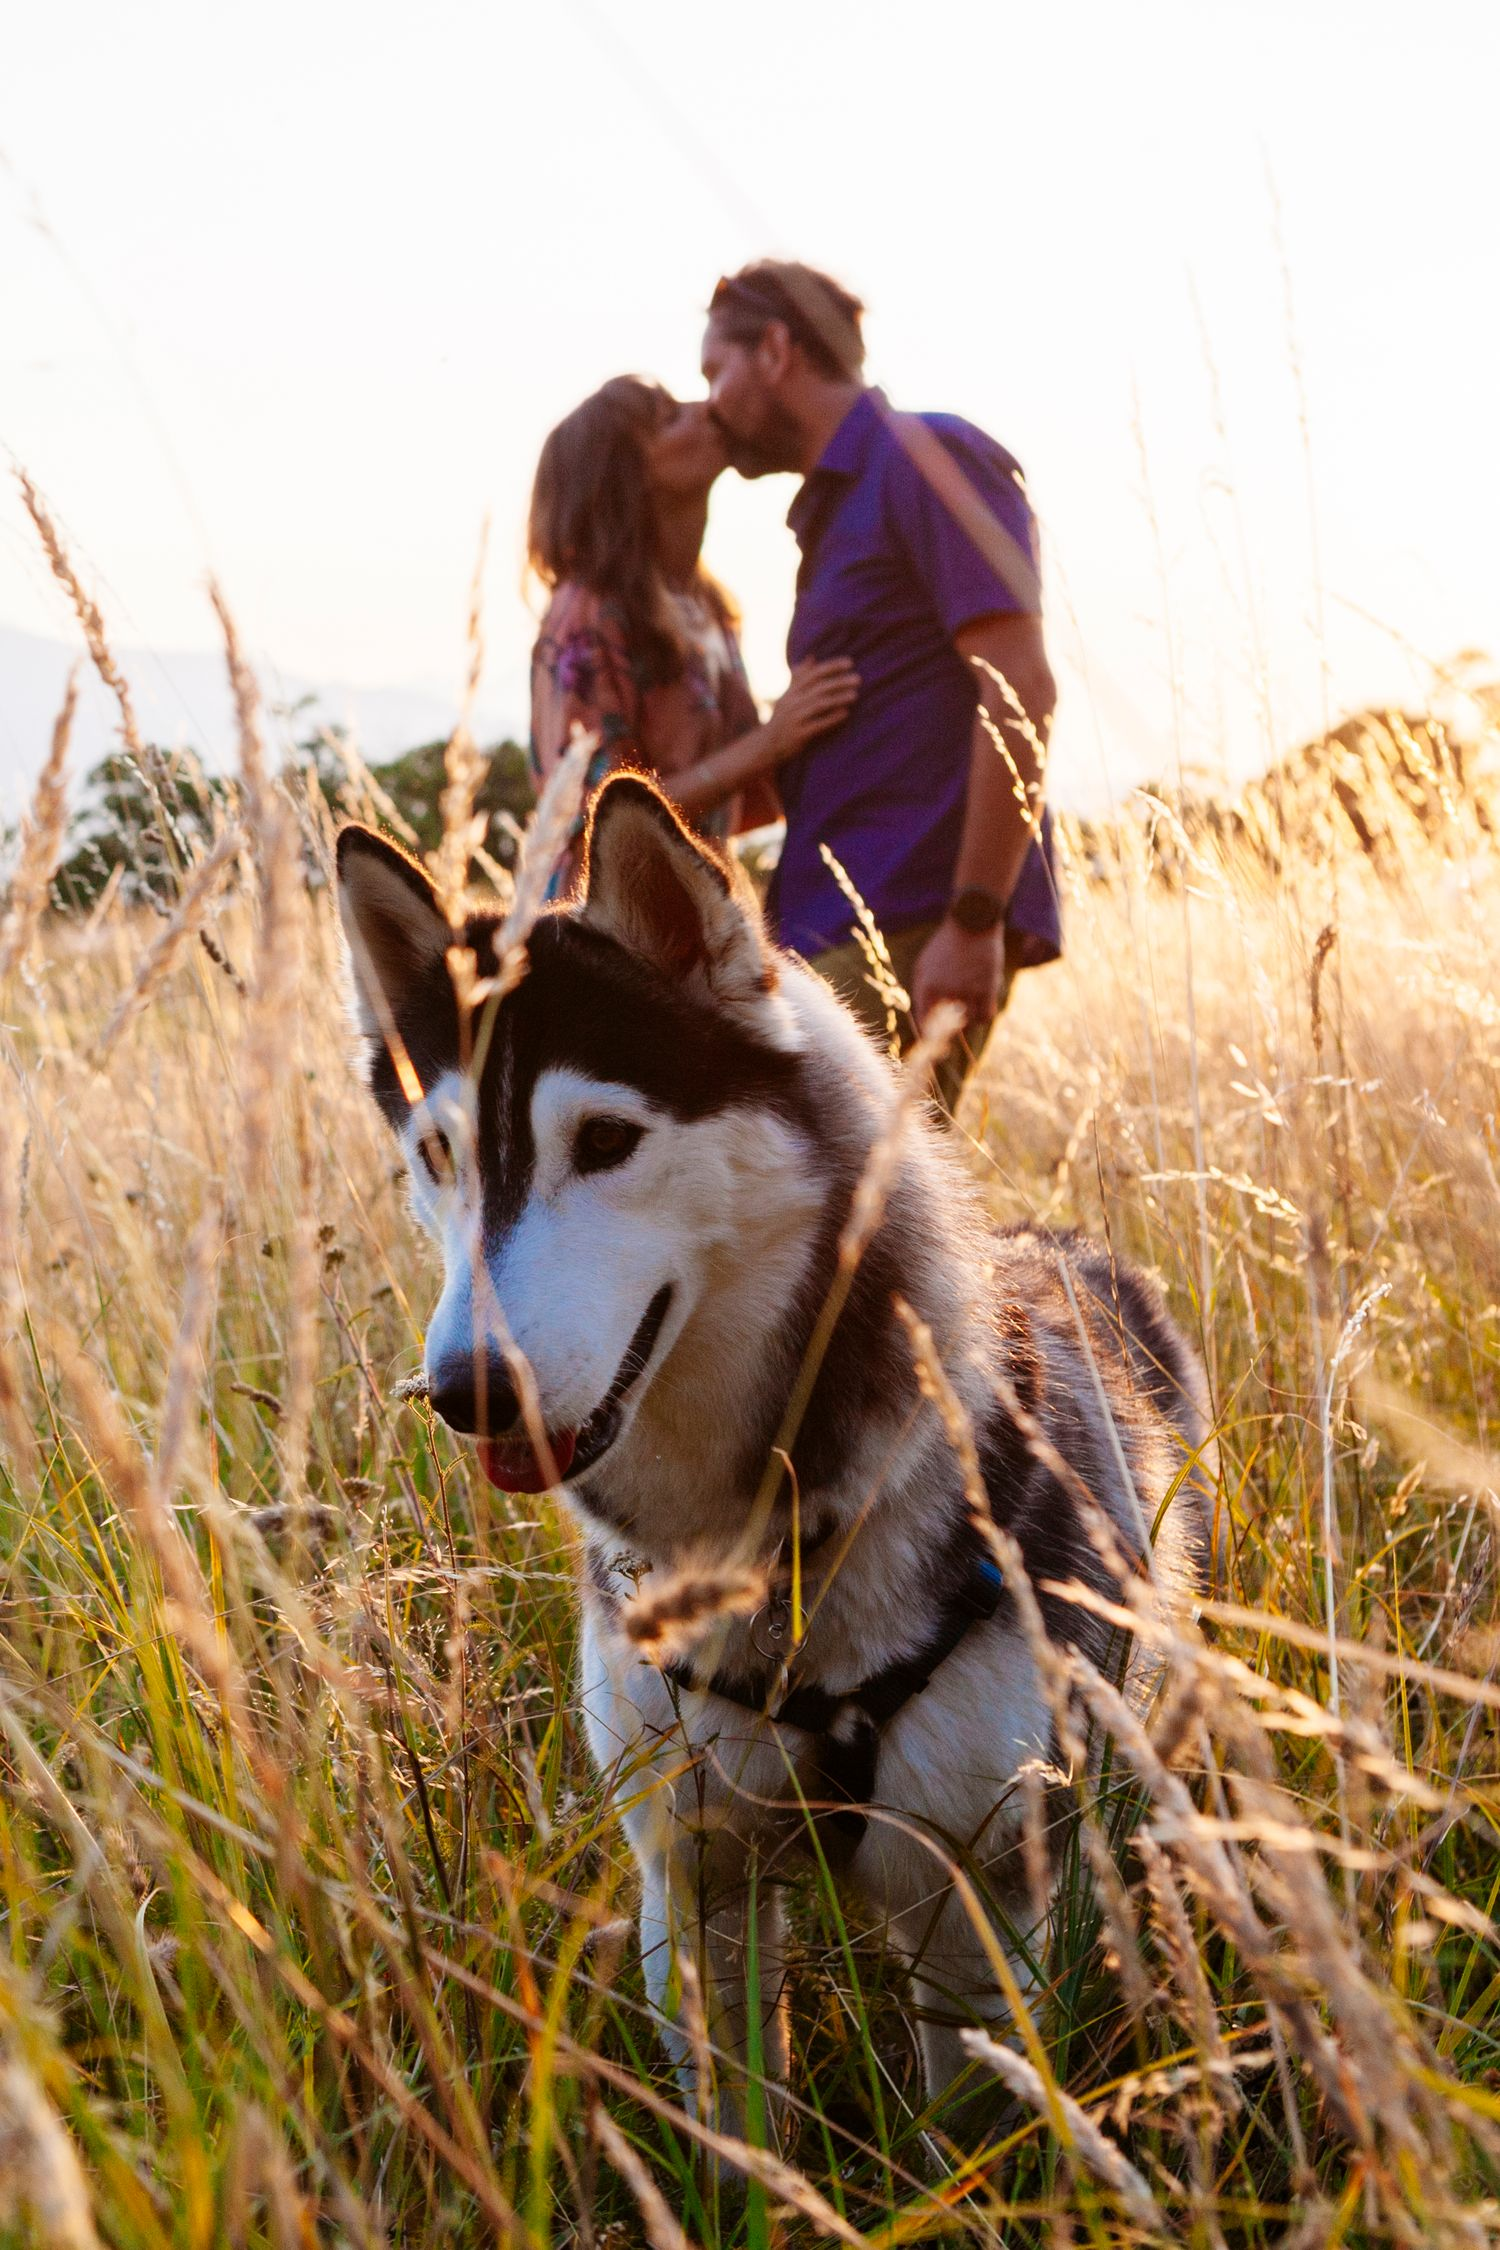 husky dog takes centre stage during sunset engagement photo shoot in Tuscany